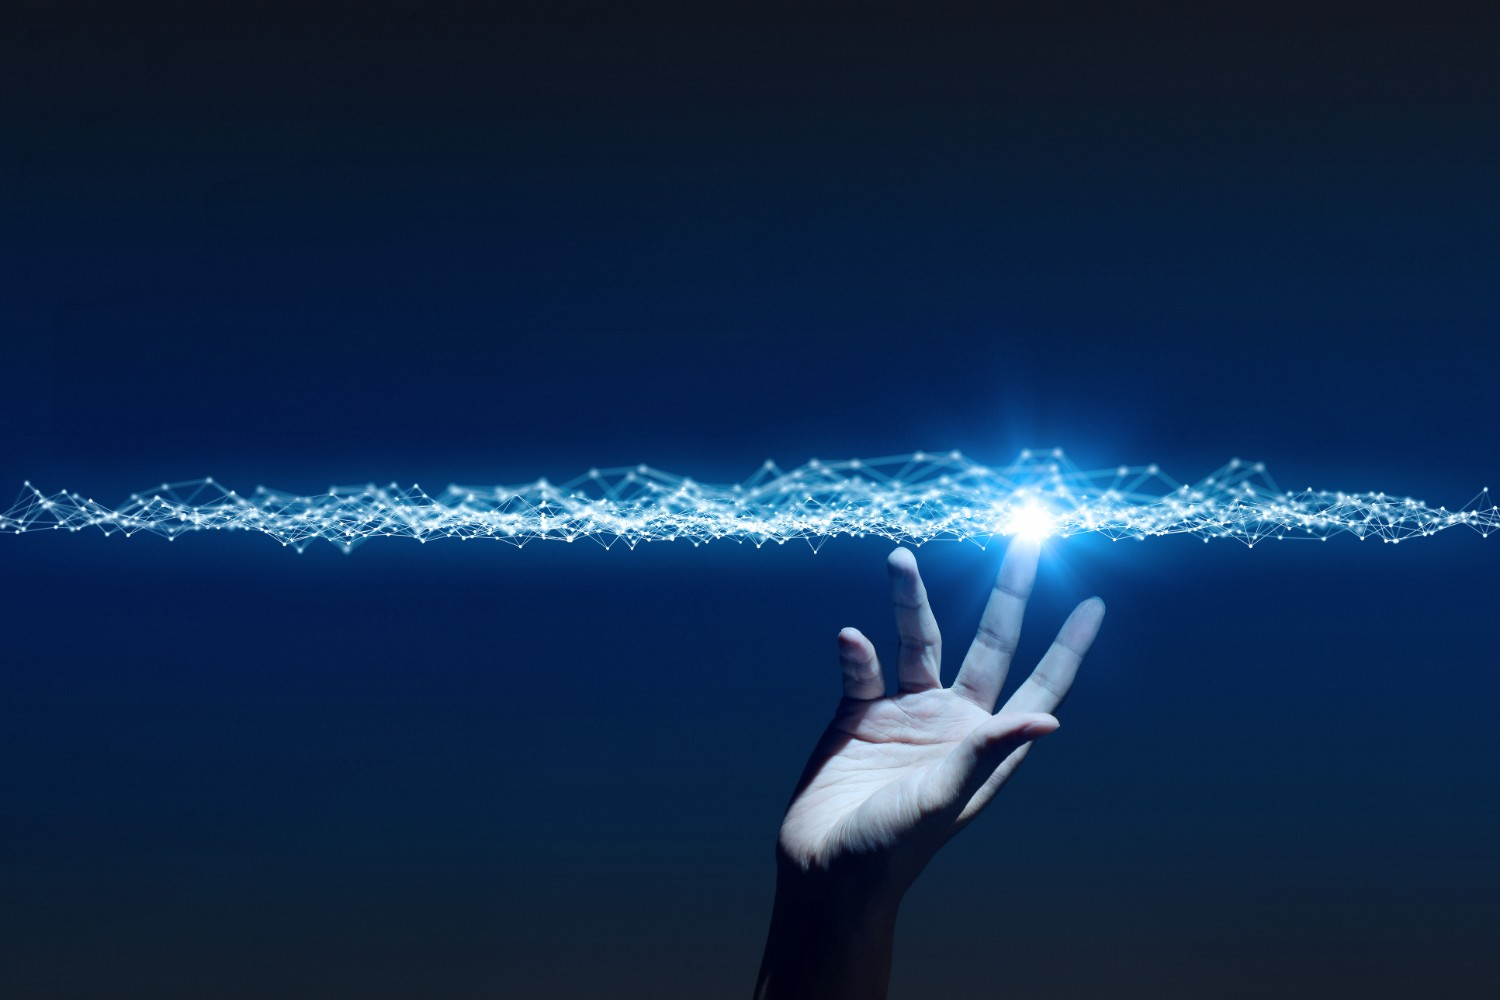 human hand reaching out to a beam of light, suggesting automation